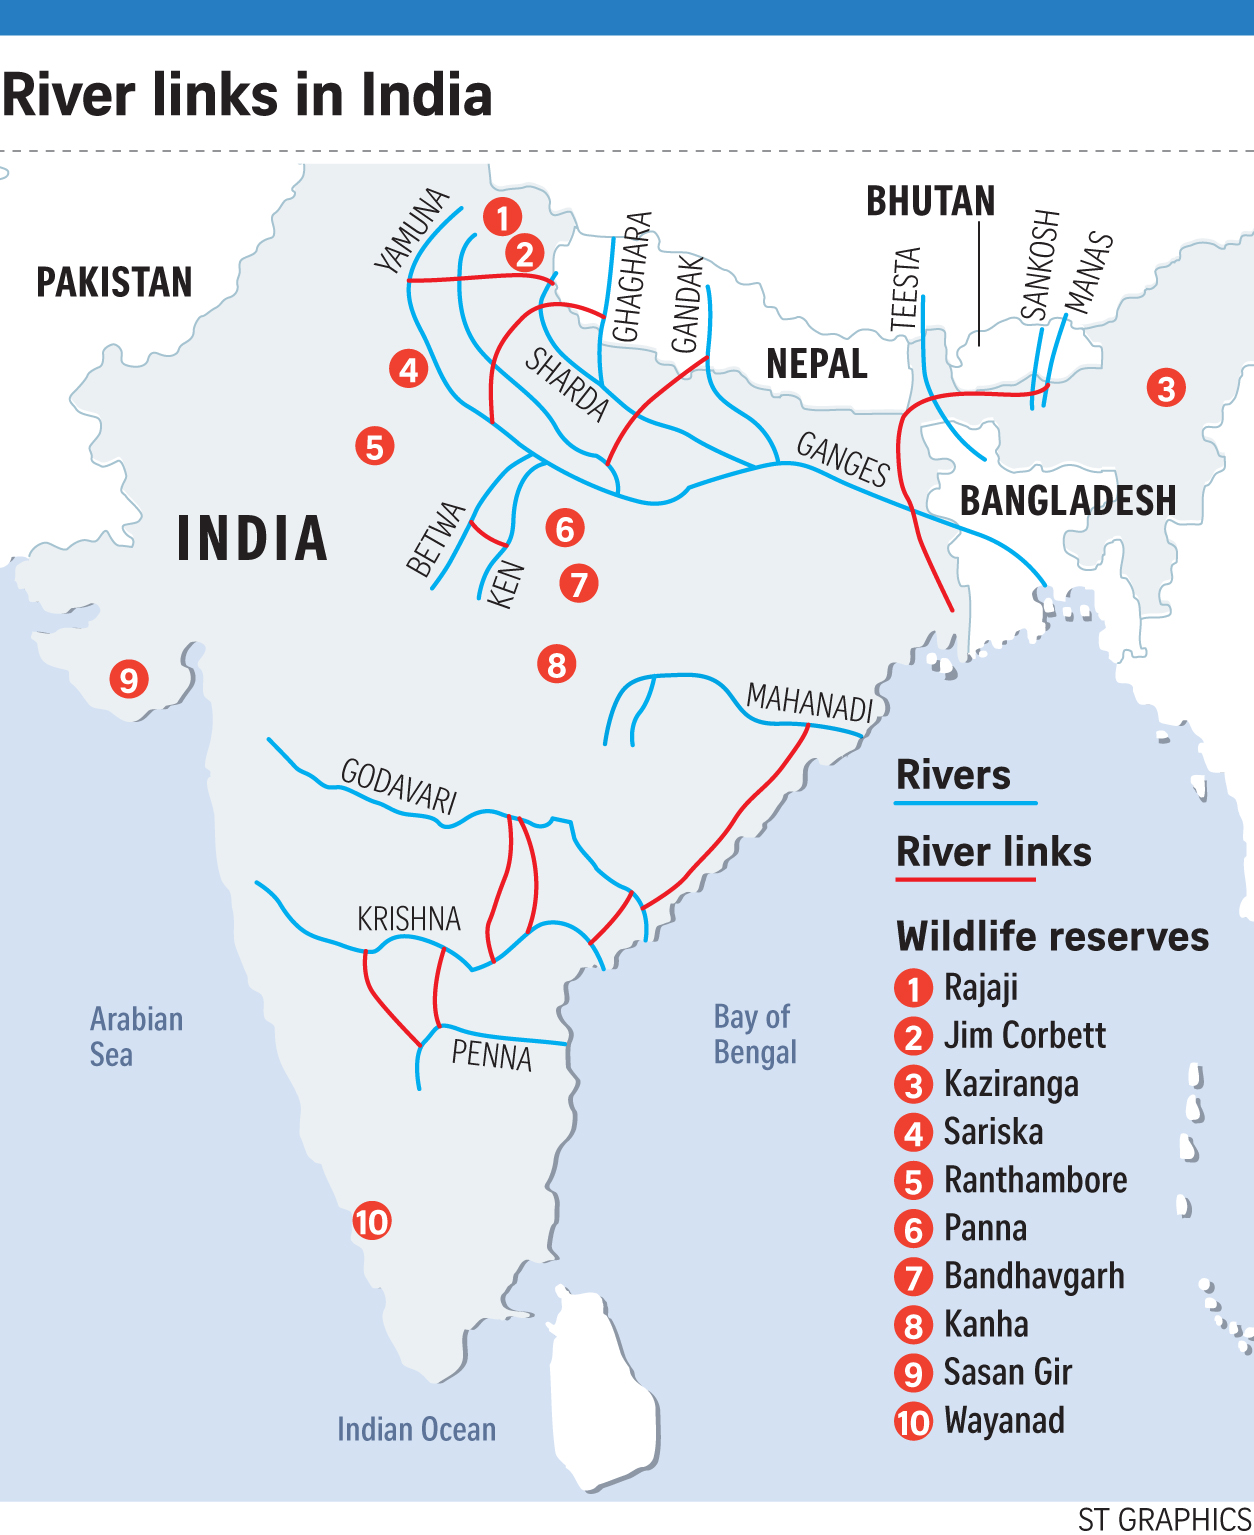 interlinking of rivers in india Interlinking of rivers in india part 1, benefit of farmers or a natural disaster indian geography  what the river interlinking project will do  - duration: 2:50 scrollin 51,243 views.